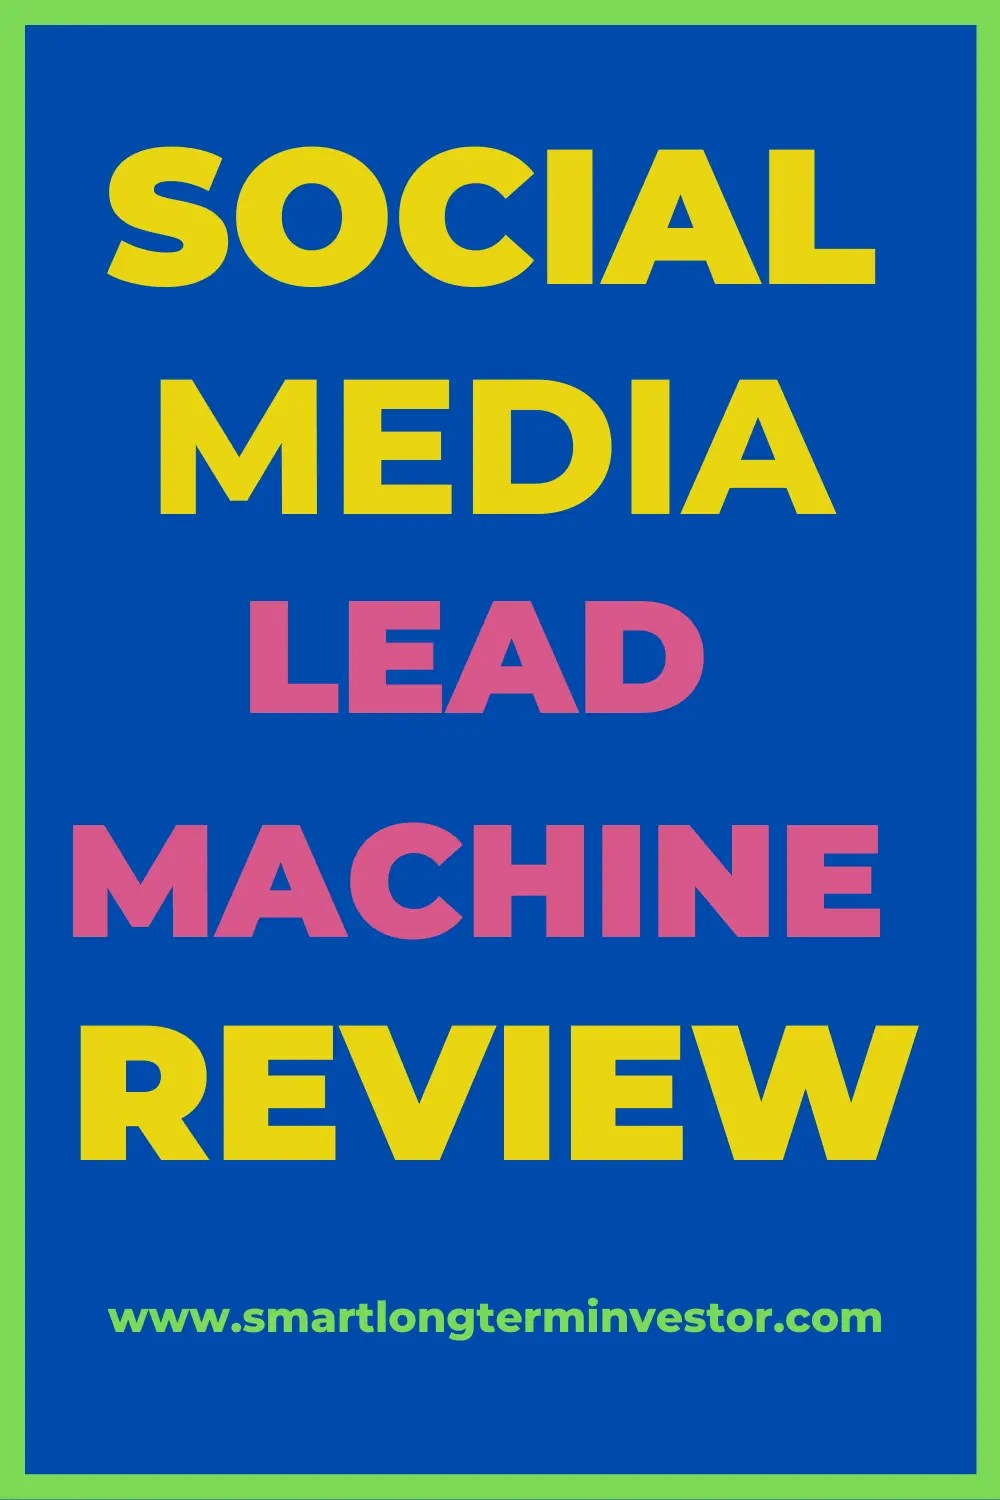 Social Media Lead Machine Review - Blake Nubar Program